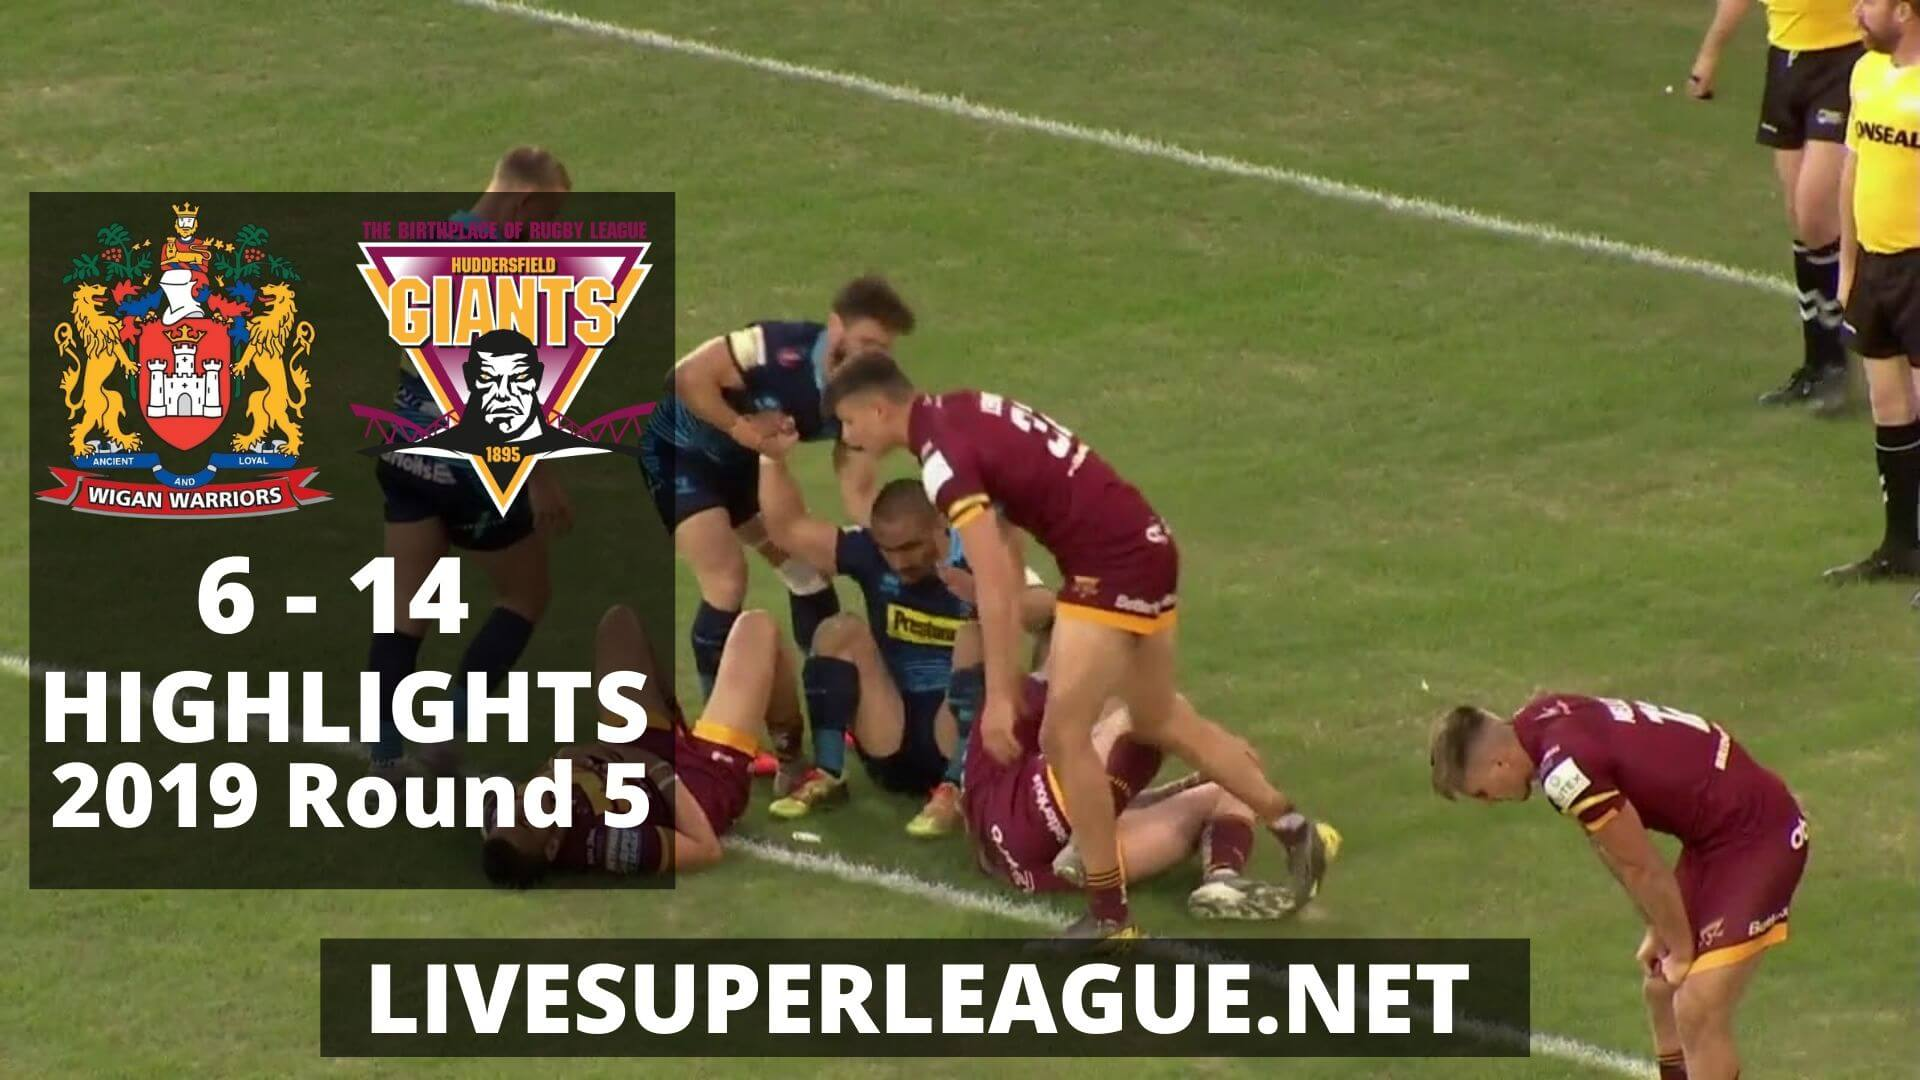 Wigan Warriors Vs Huddersfield Giants Highlights 2019 Round 5